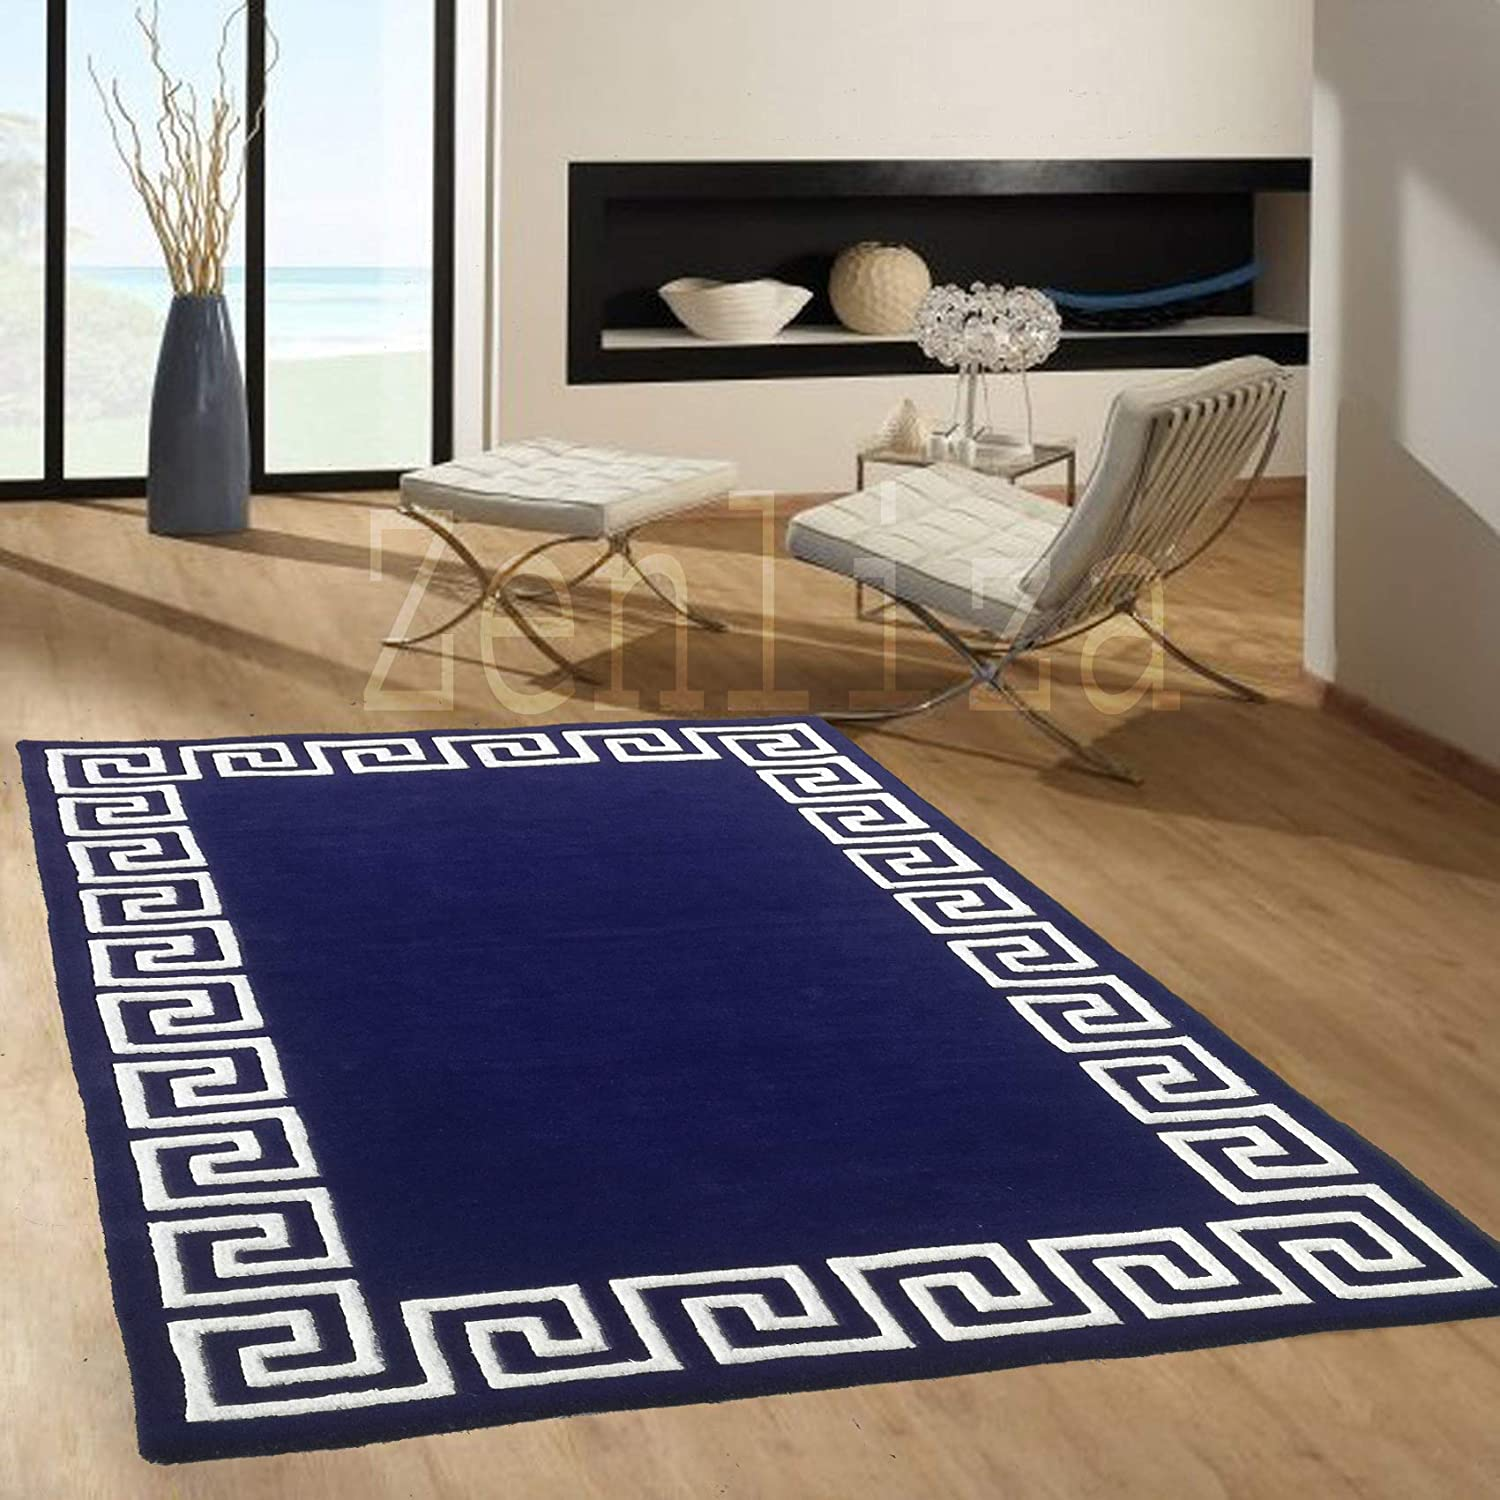 Buy Al Madad Hand Made Wool Carpet For Living Room Navy Blue 4 X 6 Feet Online At Low Prices In India Amazon In